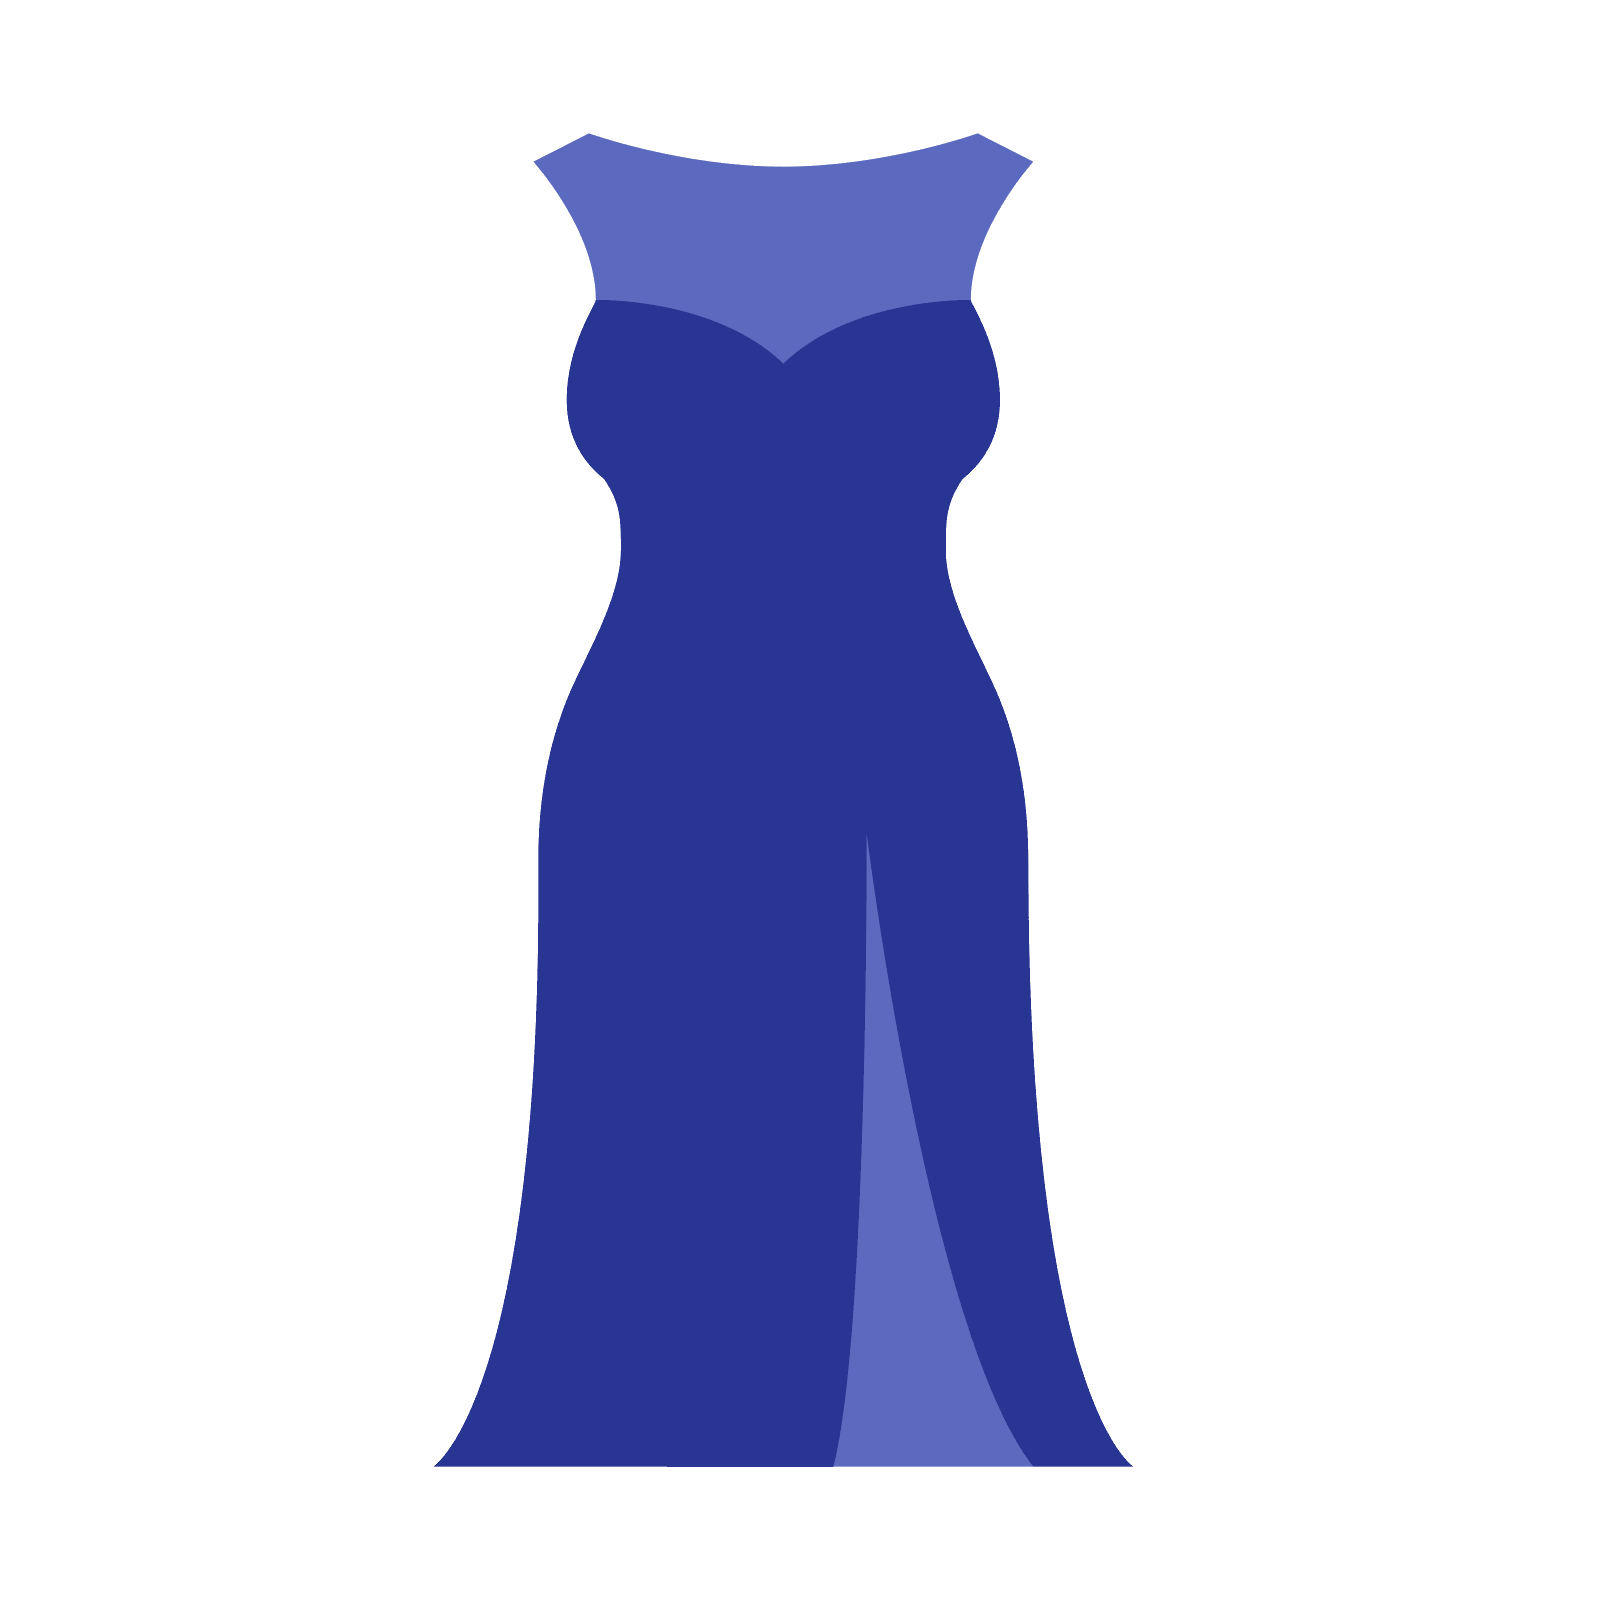 Clipart clothes prom. Dress icon dresses for